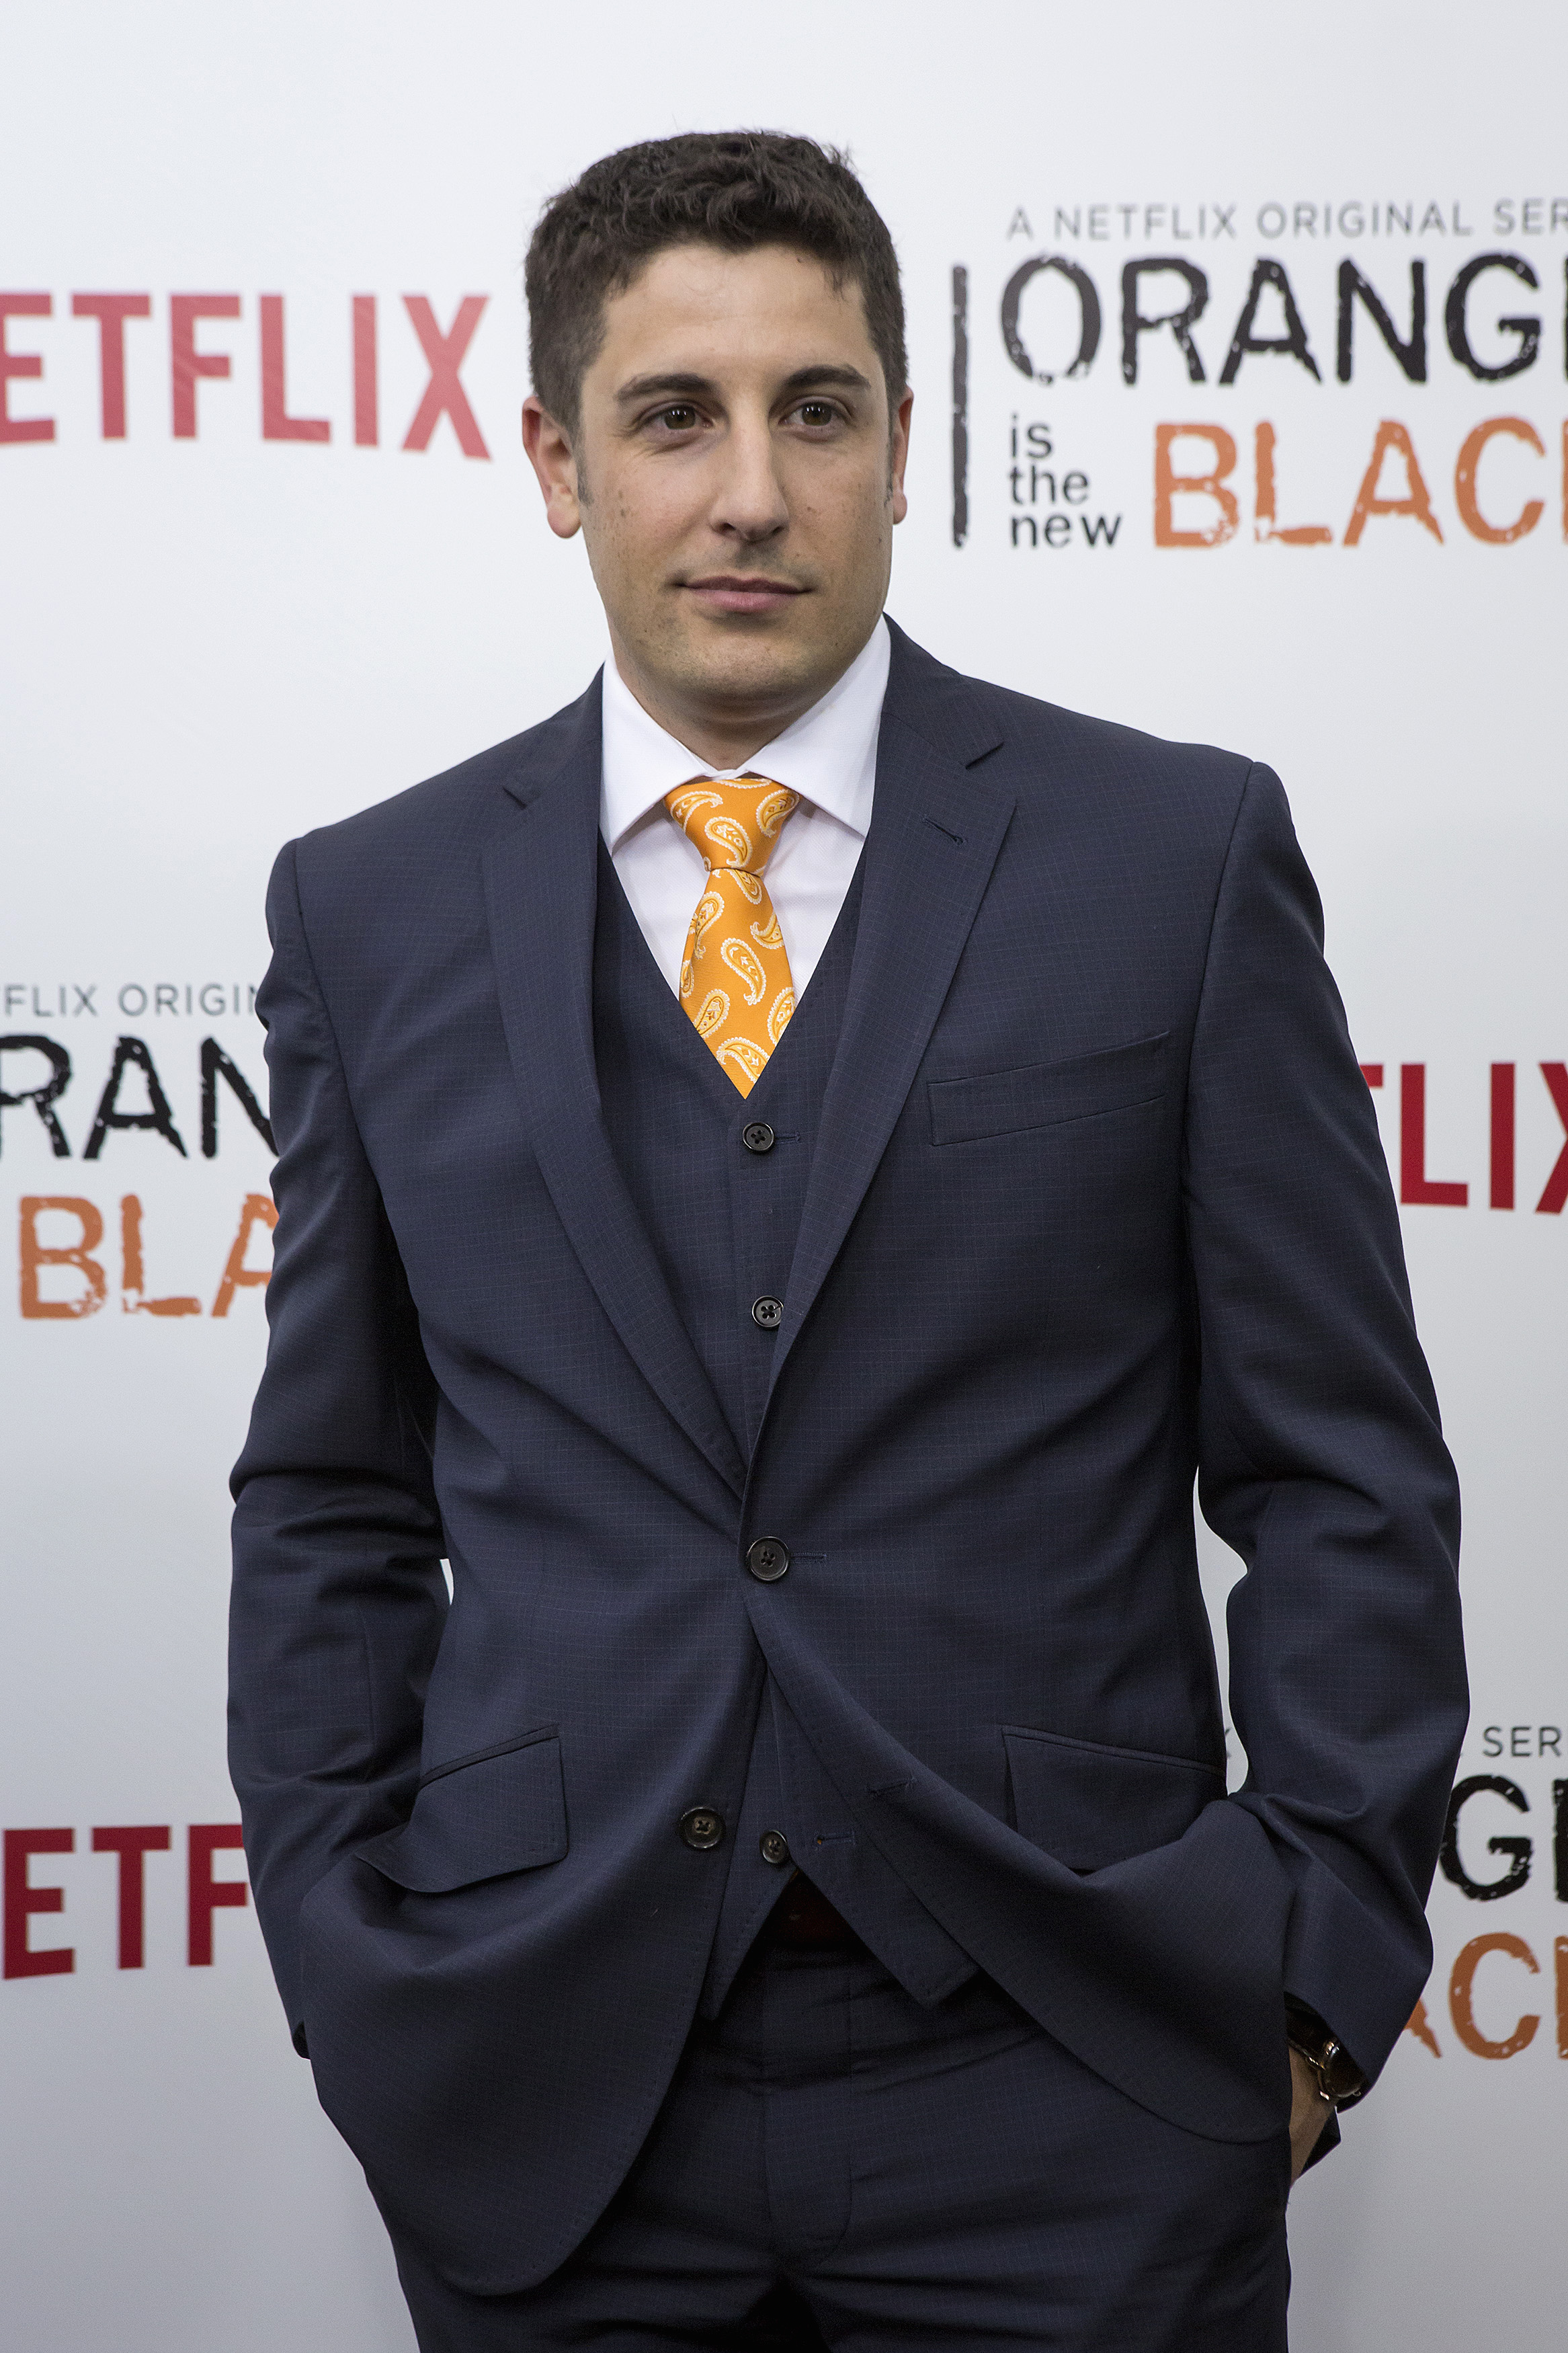 Cast member Jason Biggs attends the season two premiere of  Orange is the New Black  in New York on May 15, 2014. Biggs sparked public outrage after a series of controversial Twitter posts about Malaysia Airlines flight MH17 shortly after it crashed.